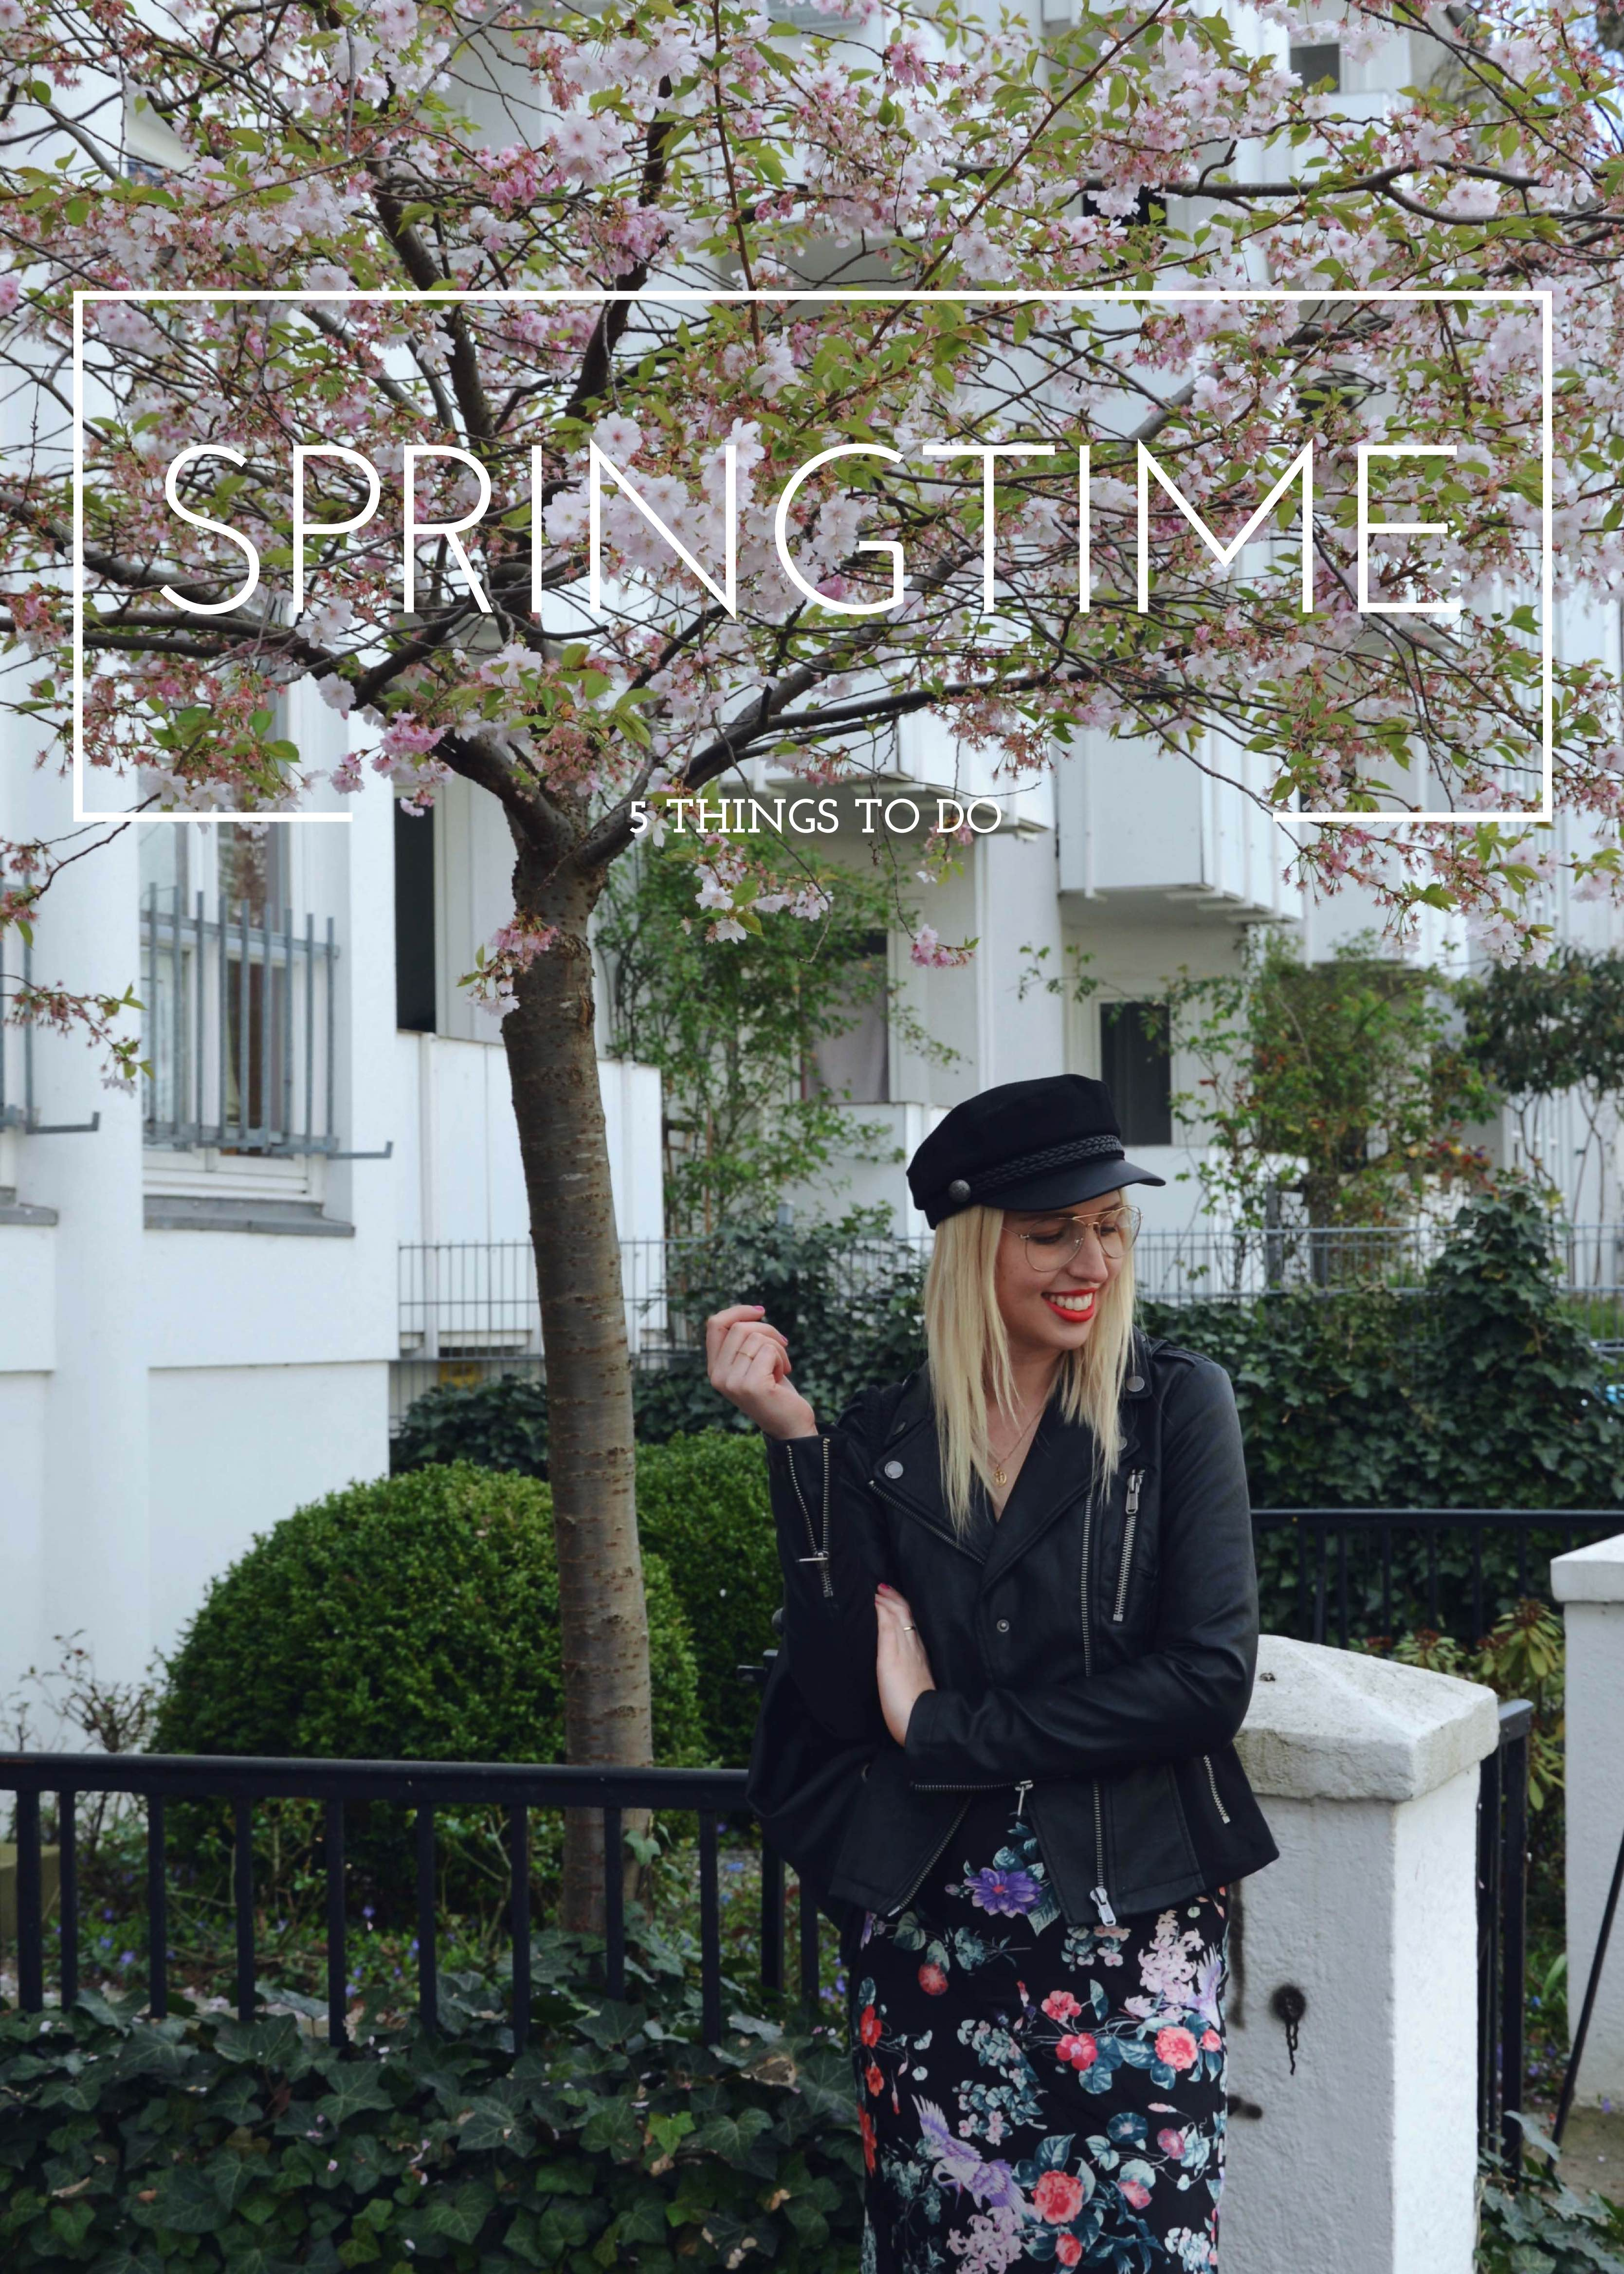 5 things to do in spring